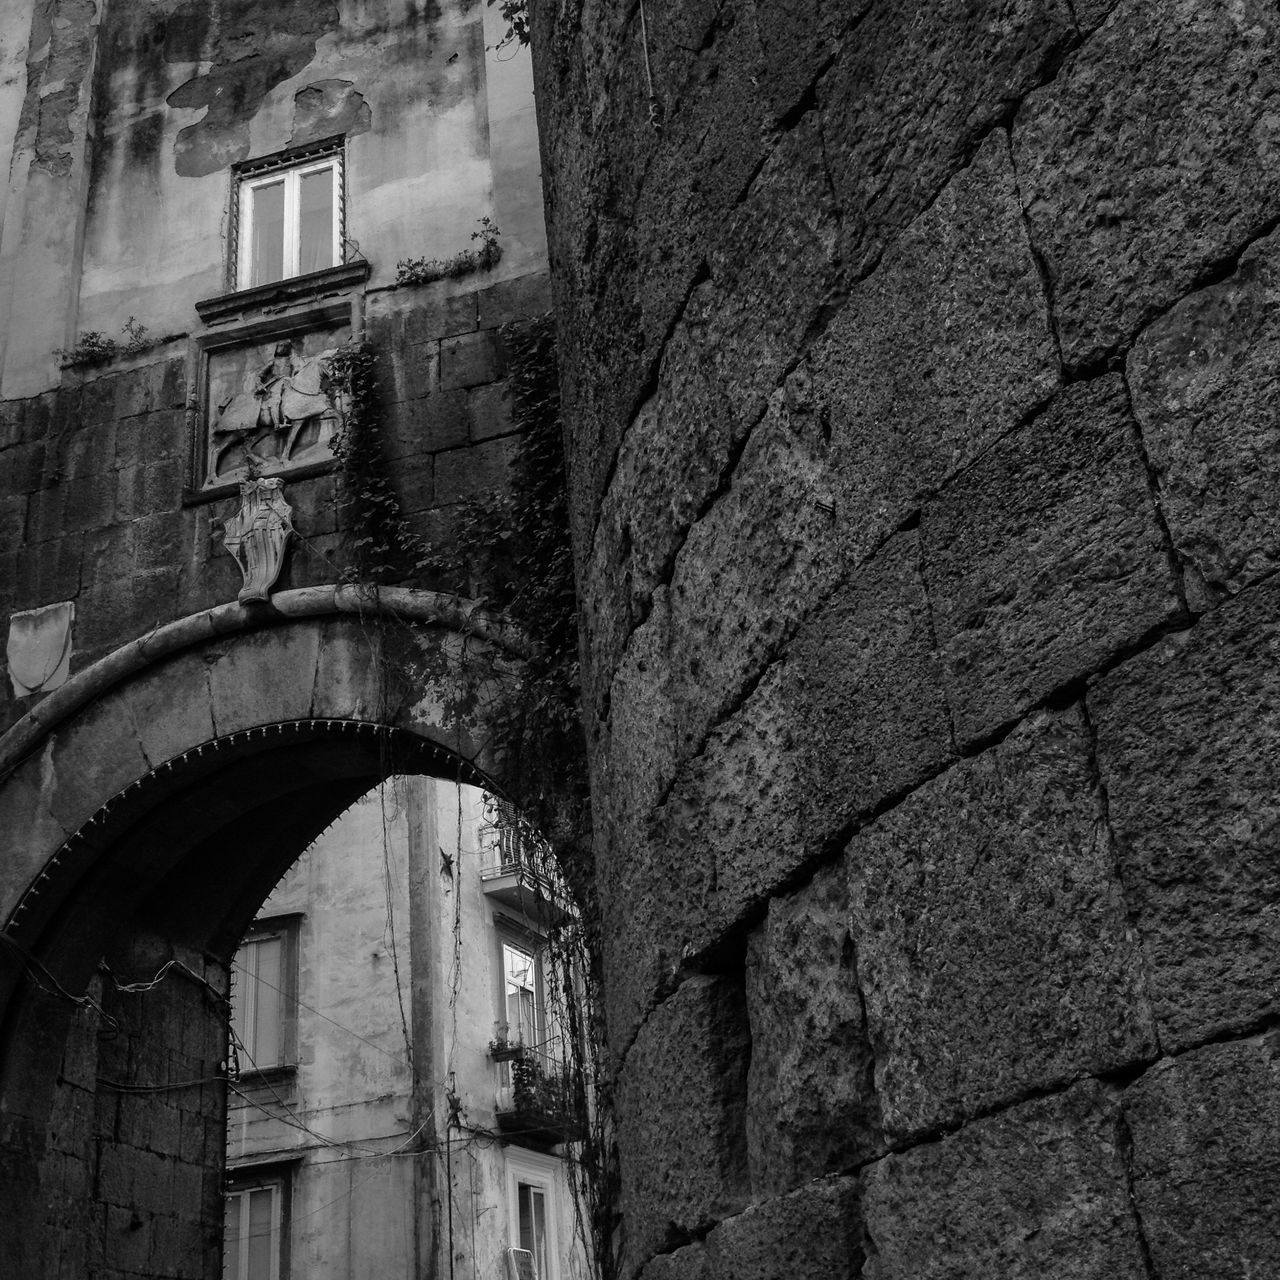 Old Town of Napoli, Campania, Italy Architecture Blackandwhite Brick Brick Wall Building Built Structure City Life Cityscape Cityscapes Decumani Gate Historic Landscape Naples Napoli No People Old Old Town Portal Sightseeing The Past Tourism Travel Destinations Traveling Window